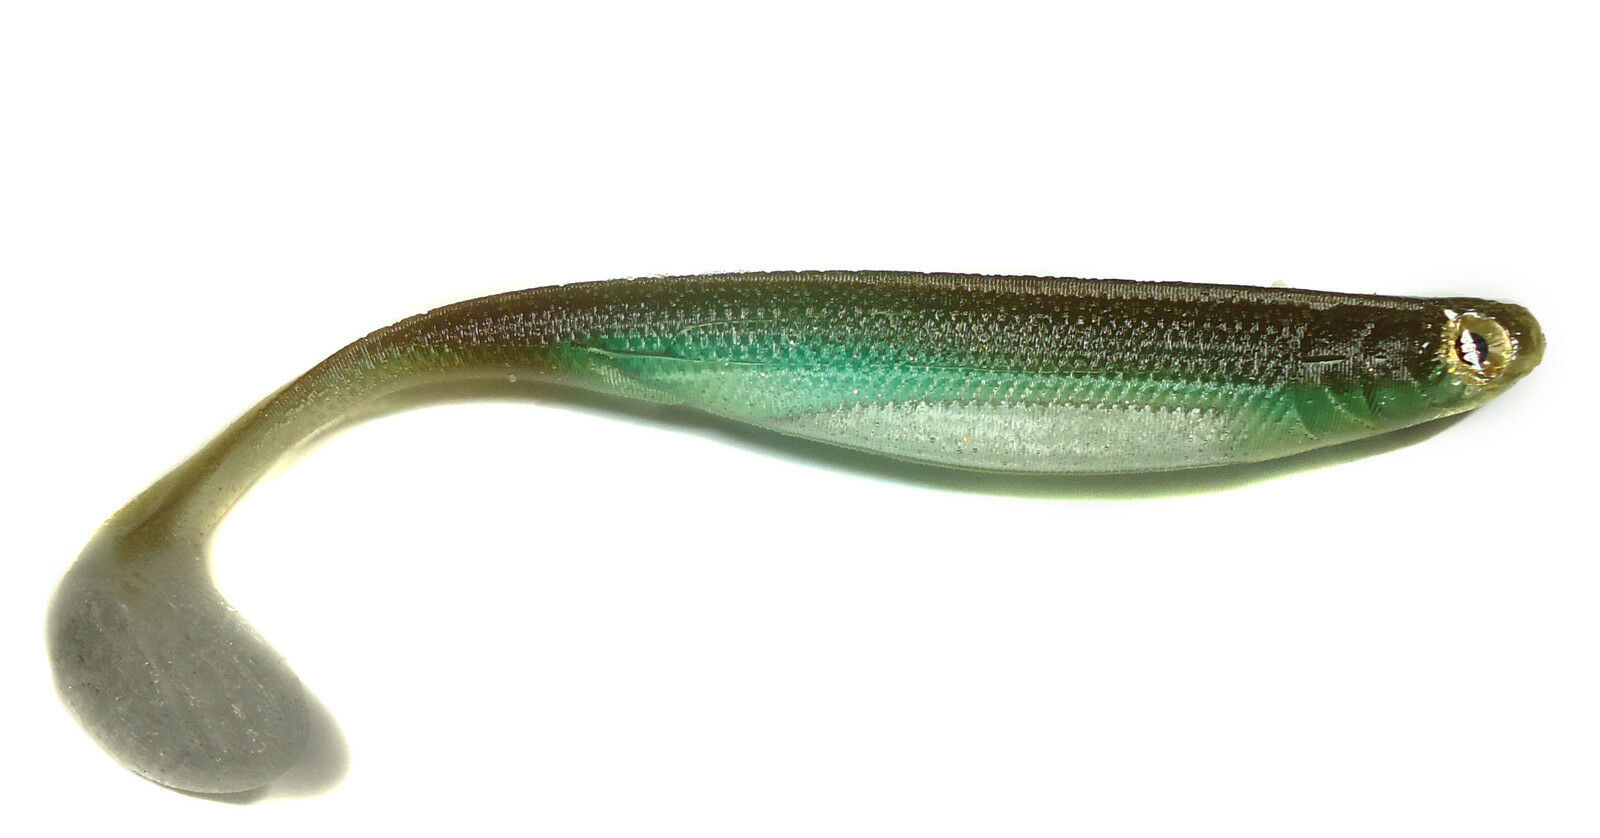 552 Silver Shad LUCKY CRAFT x OPTIMUM BAITS Opti Grub 5 inch